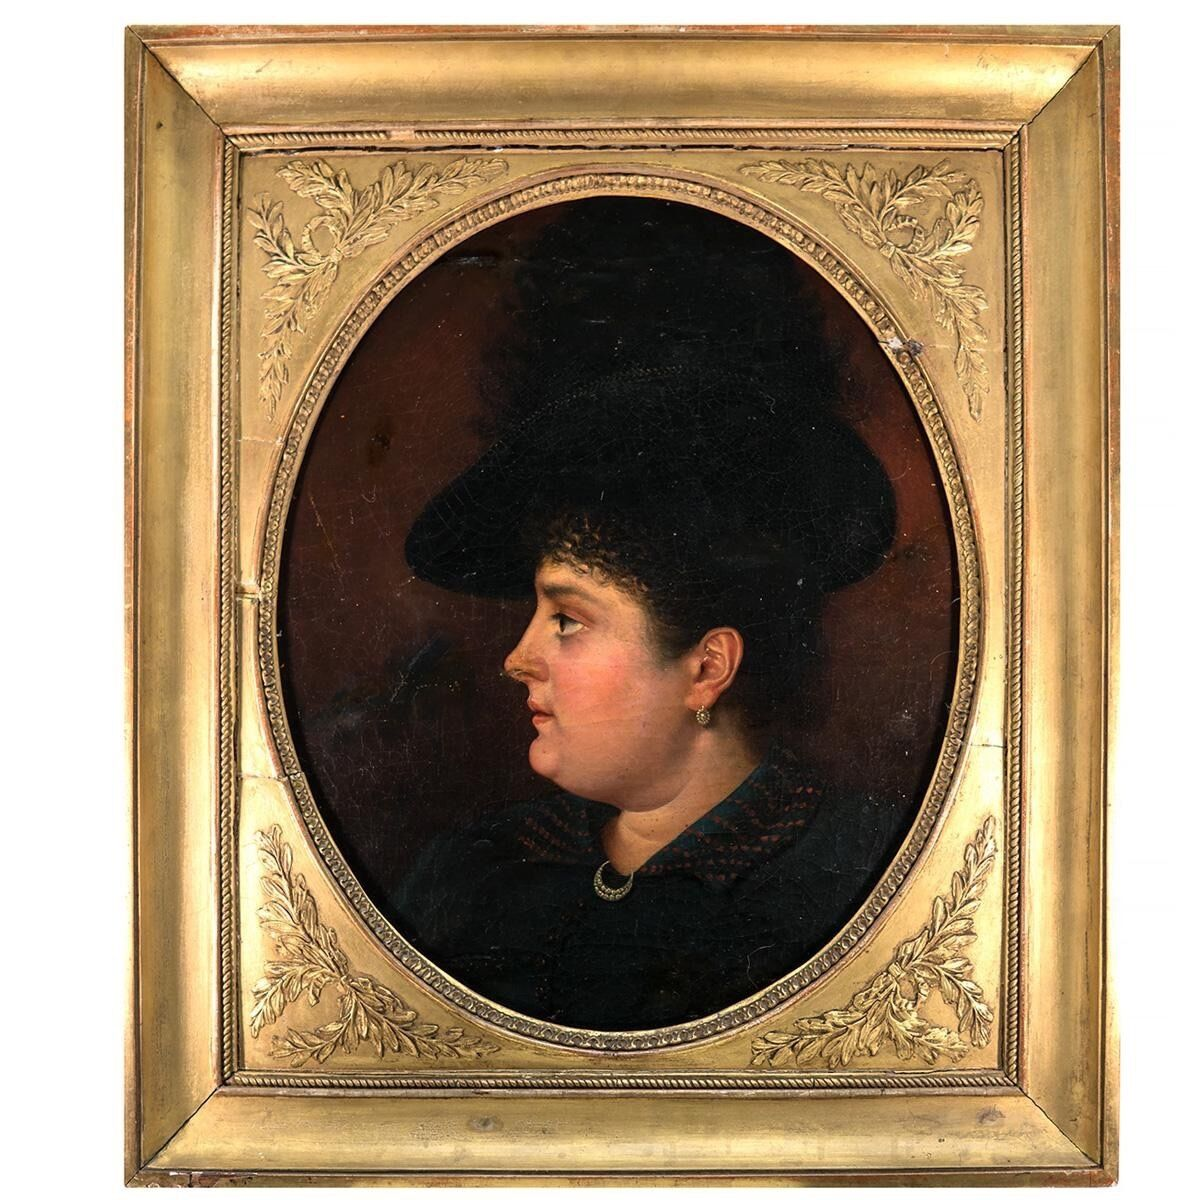 Antique French Oil Painting, Portrait of Woman c.1840s, Fine Frame, Jewelry, Hat